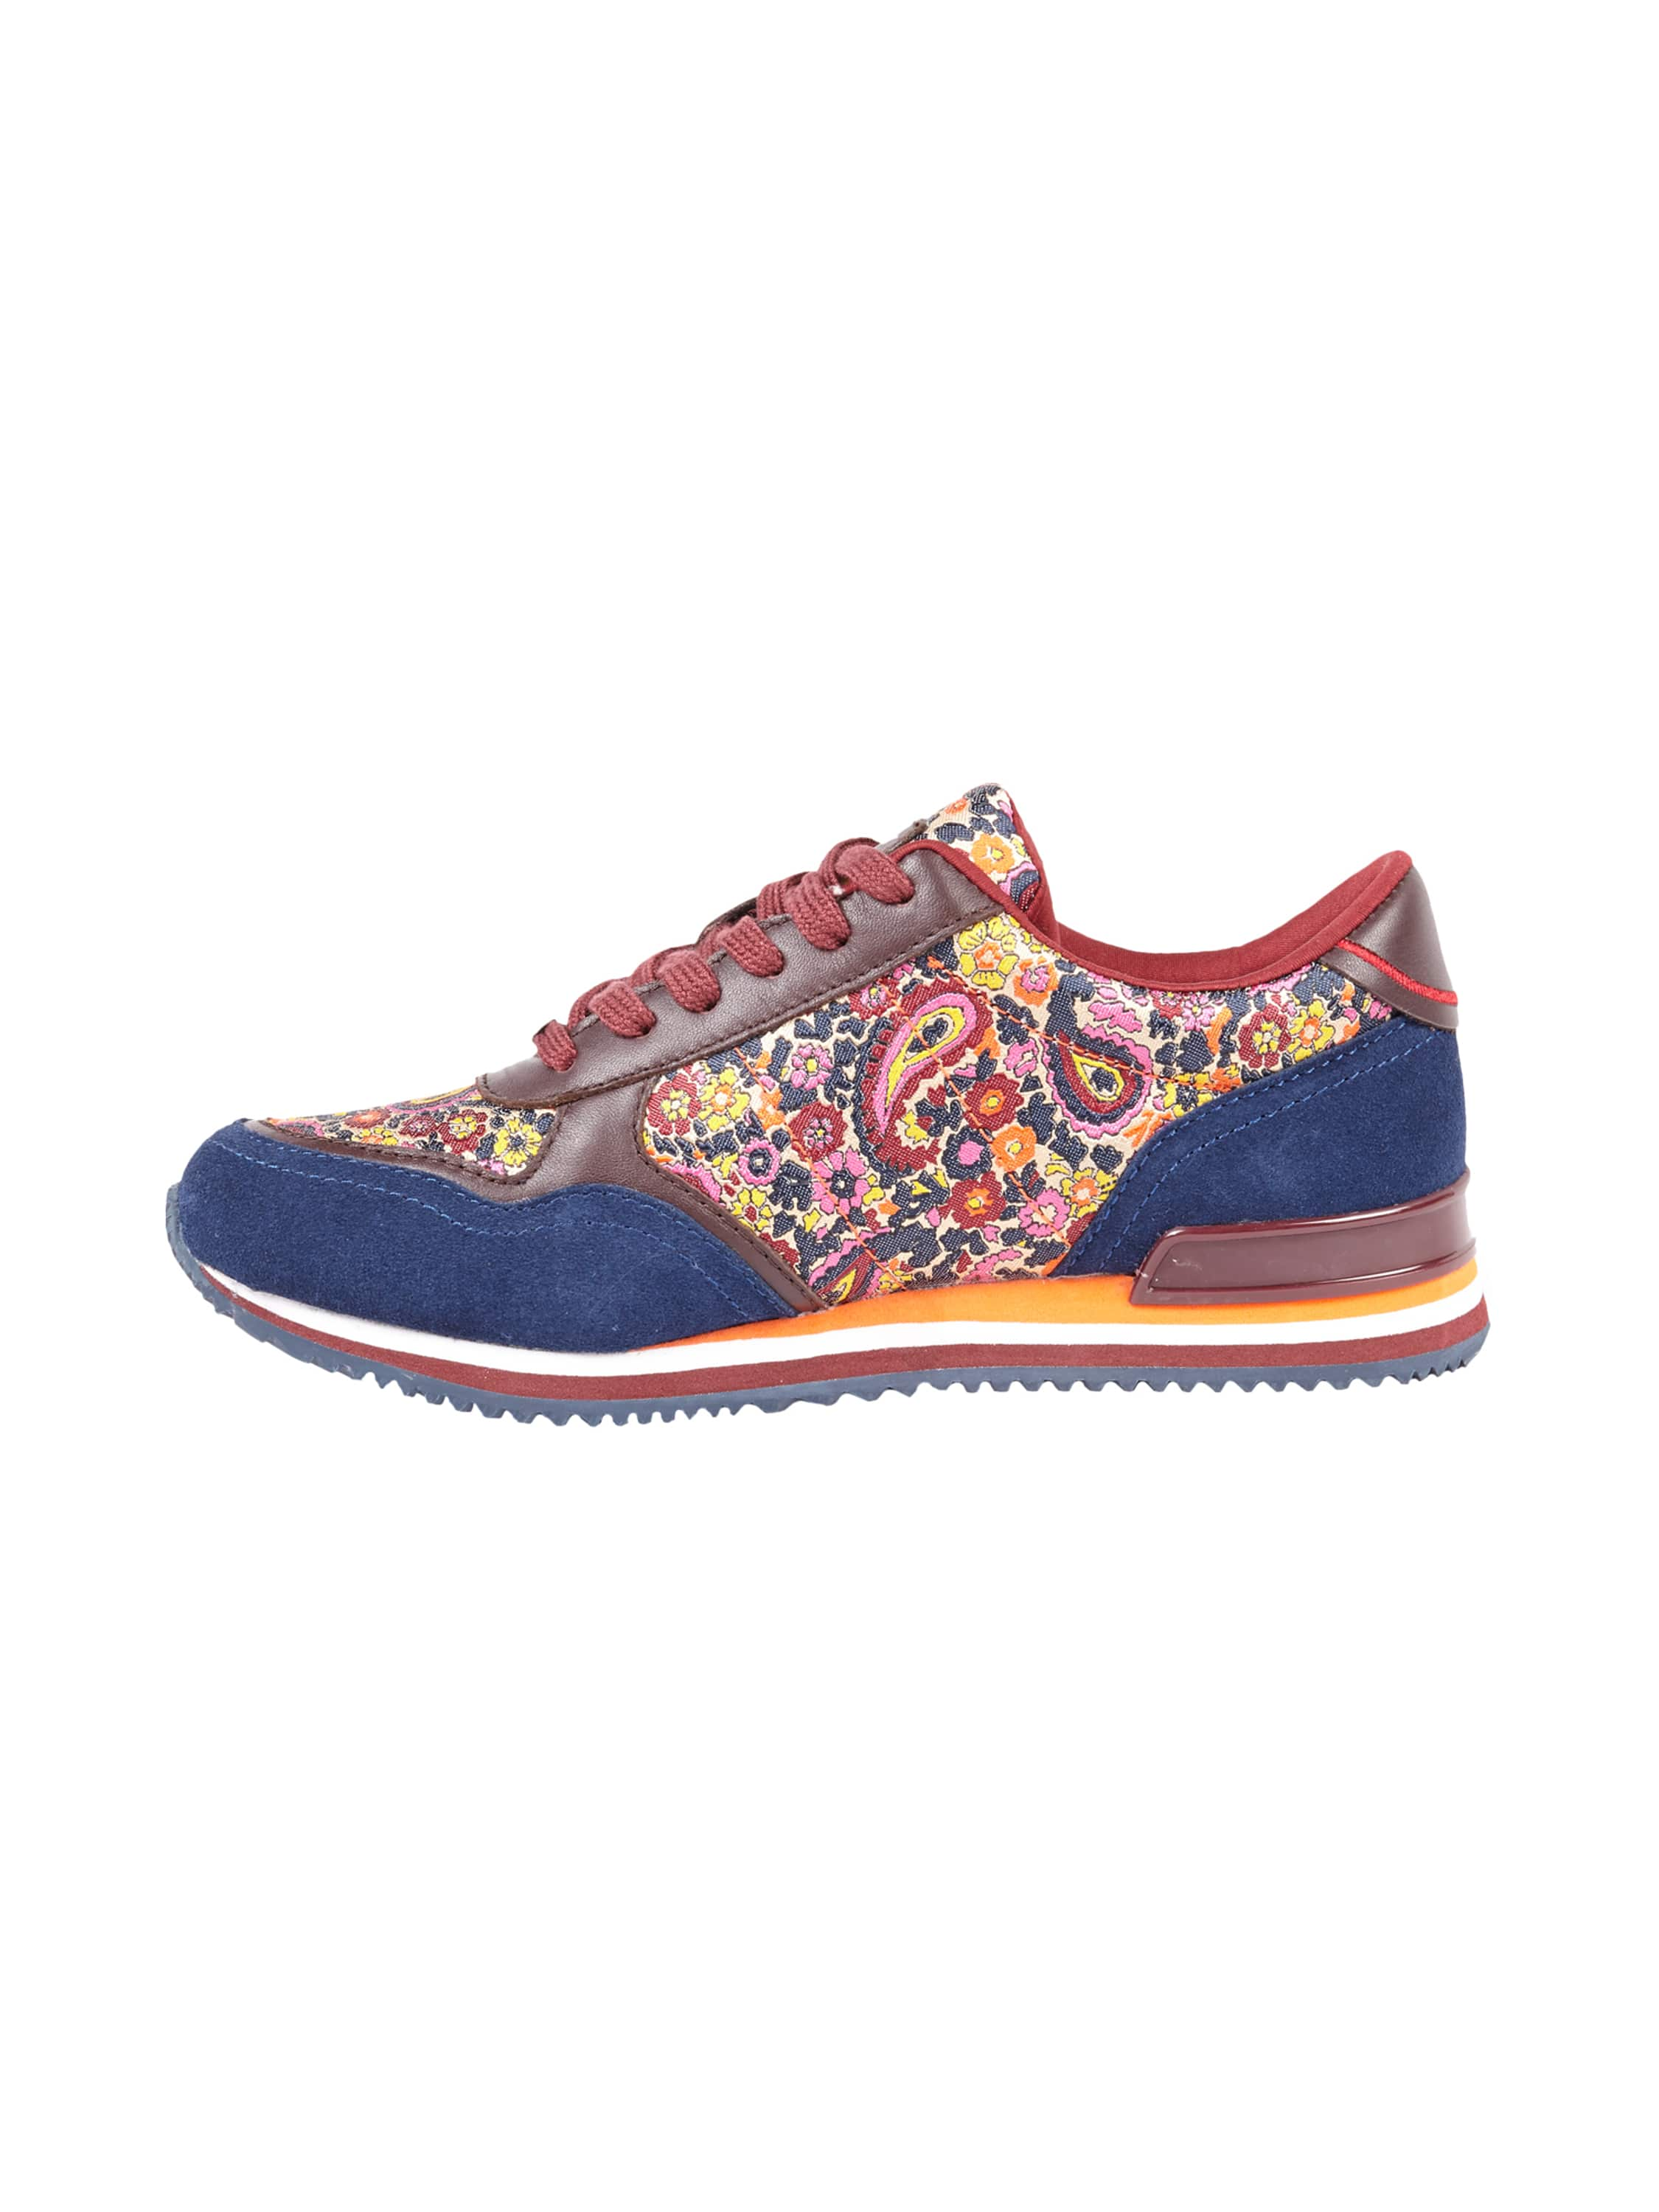 dkny sneaker mit paisley dessin in blau t rkis online kaufen 9307532 p c online shop. Black Bedroom Furniture Sets. Home Design Ideas